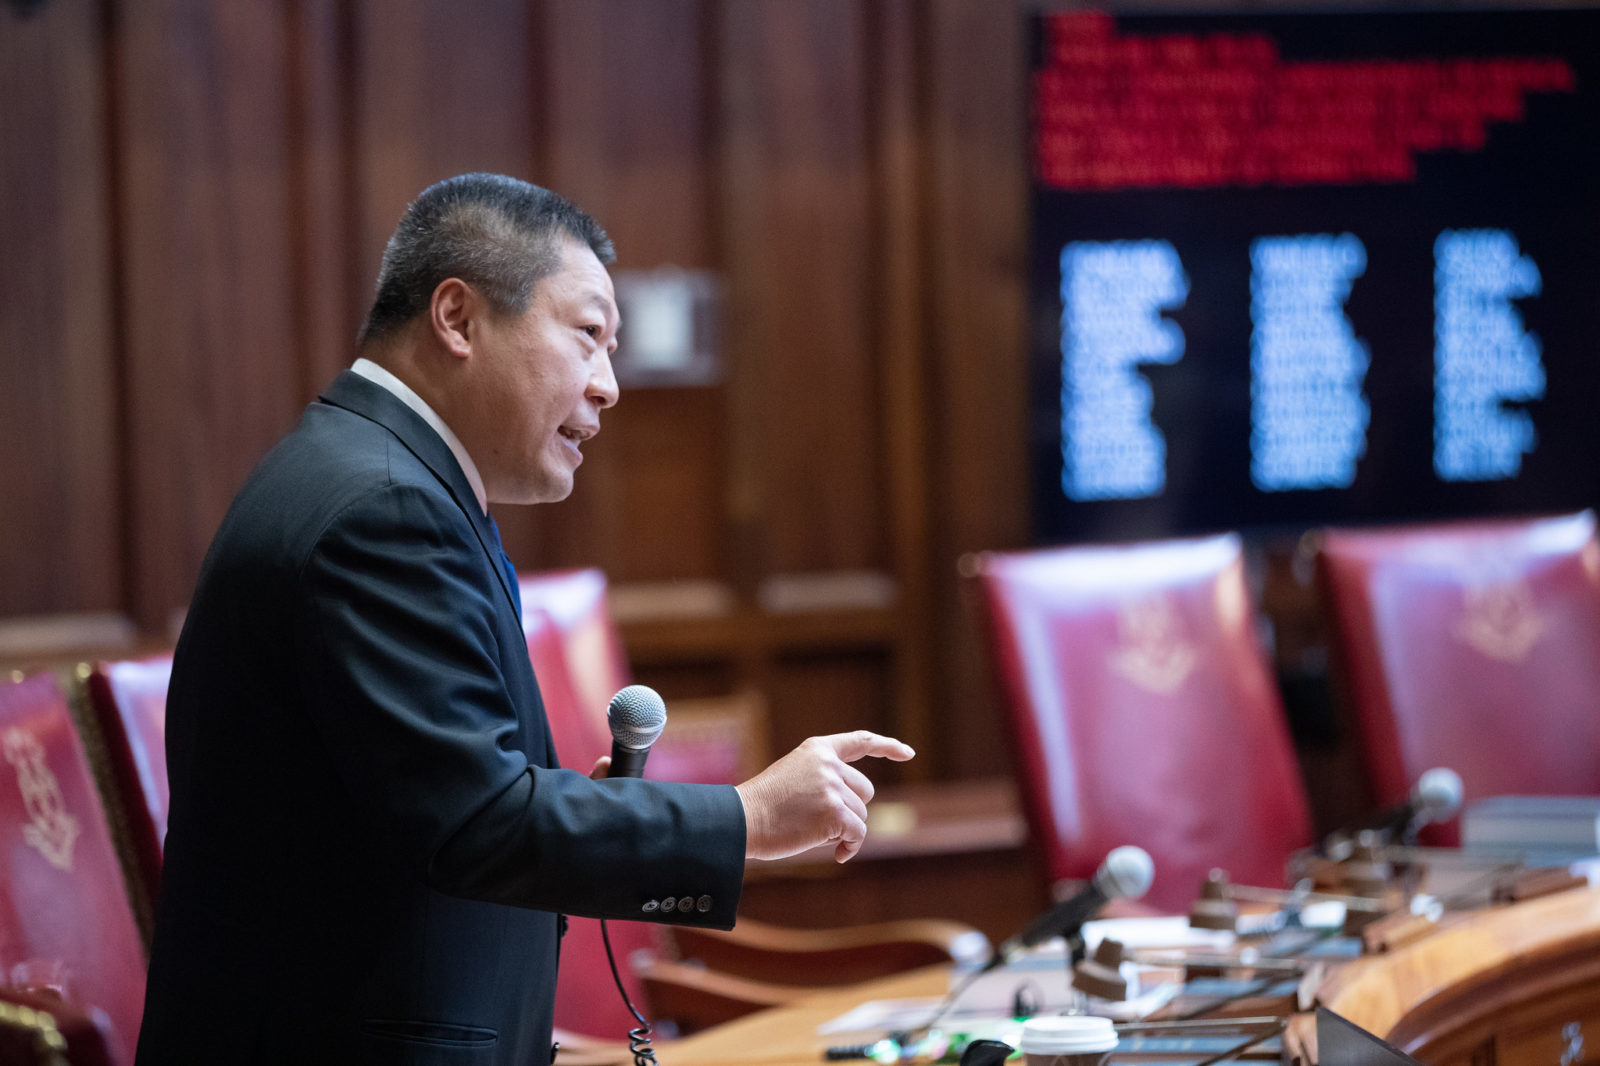 """Sen. Hwang: """"The Societal Cost and Addiction Are the True Risks of Gambling Expansion"""""""